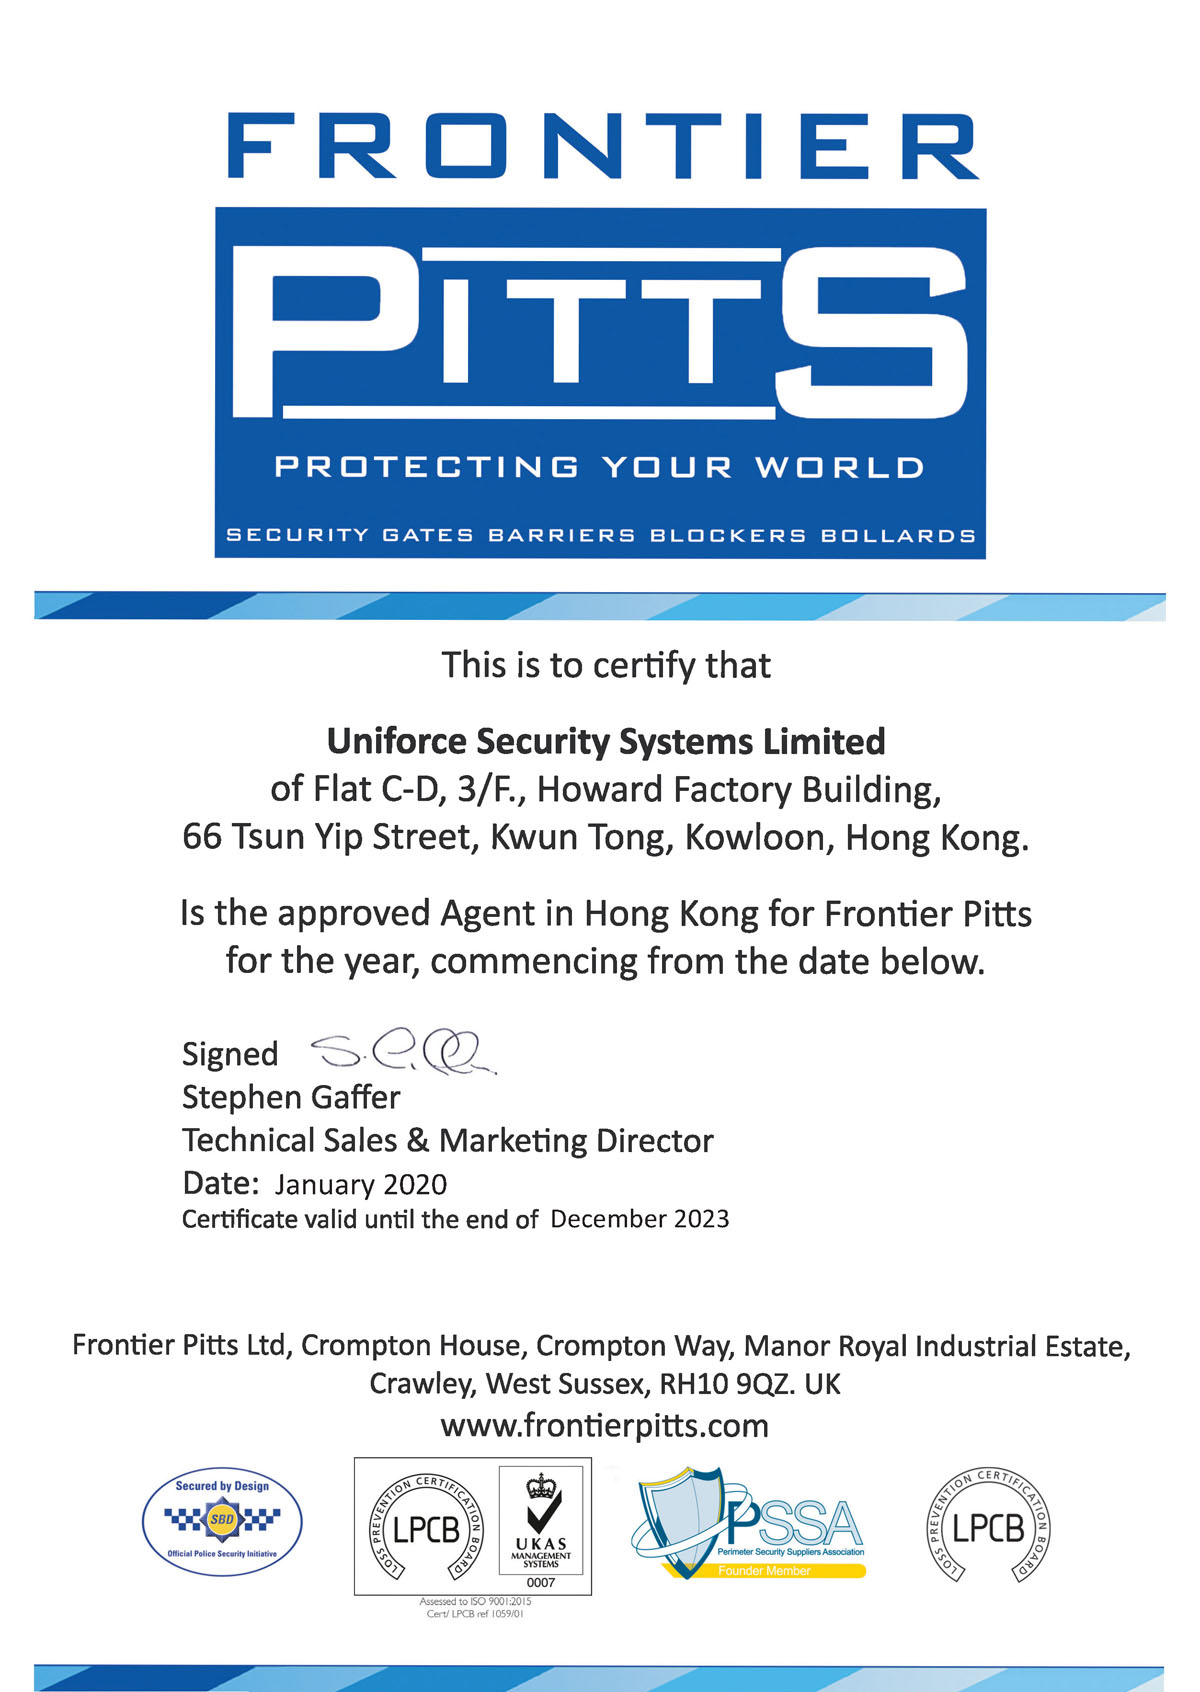 Frontier Pitts Certificate